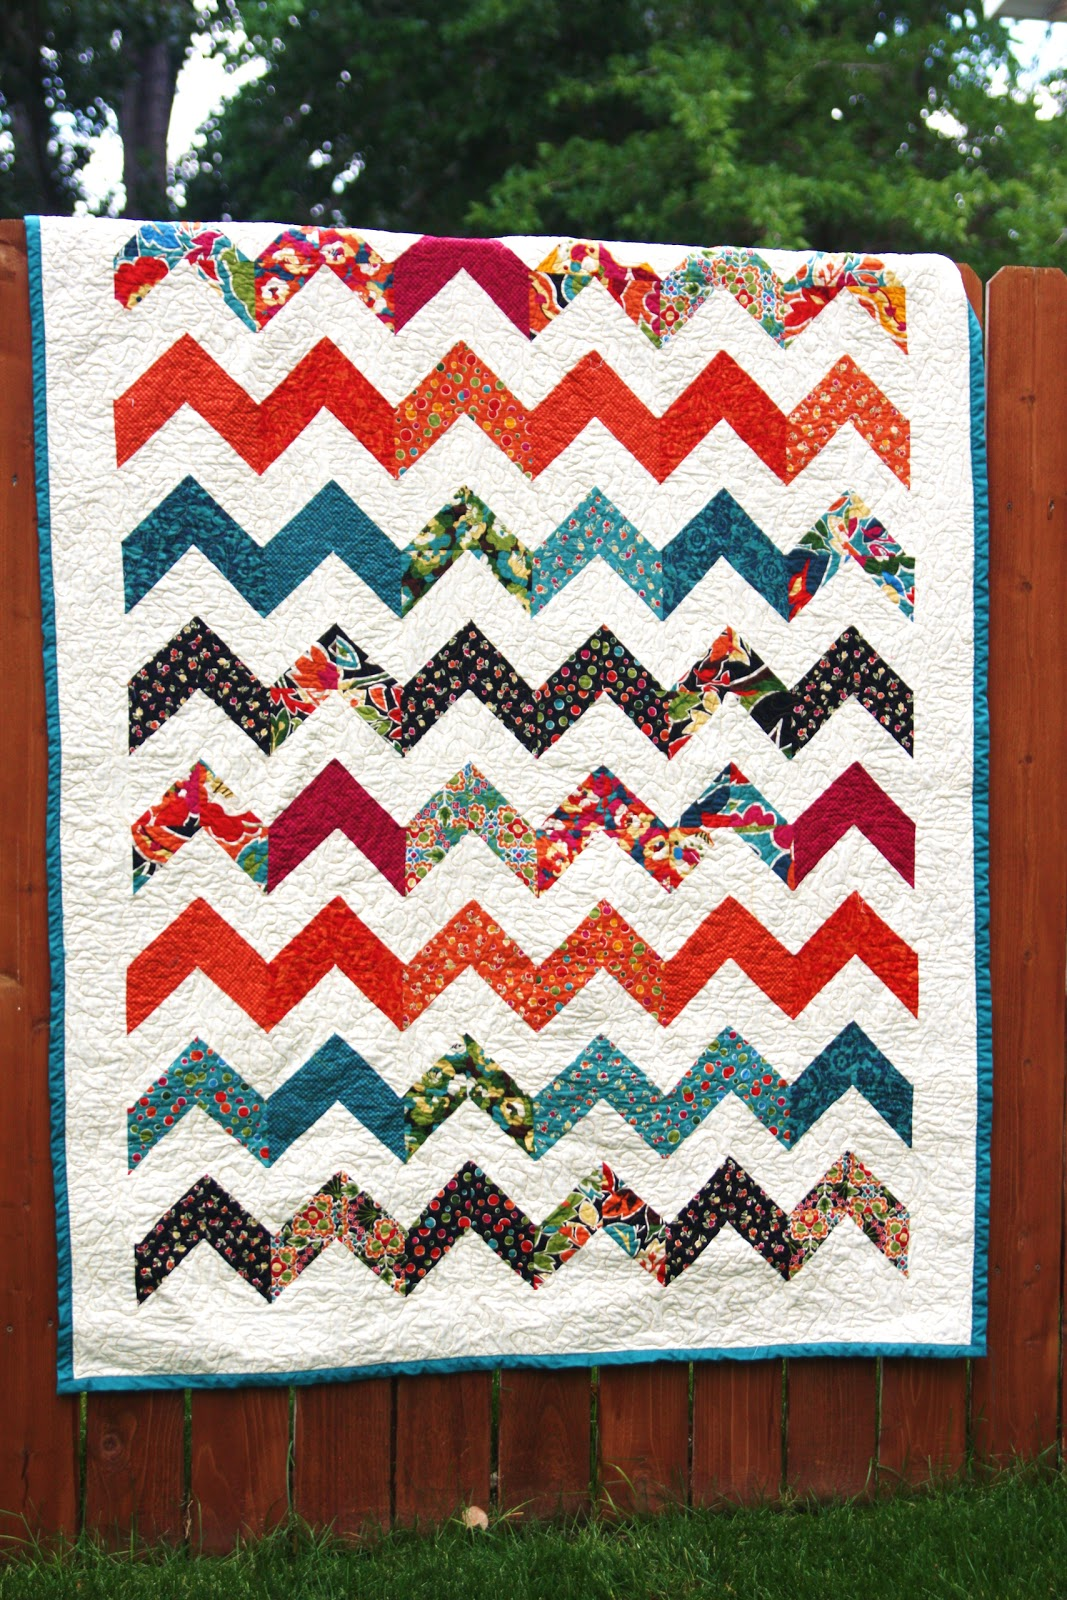 Quilting Designs For Chevron Quilts : This-n-that; a little crafting: Chevron quilt